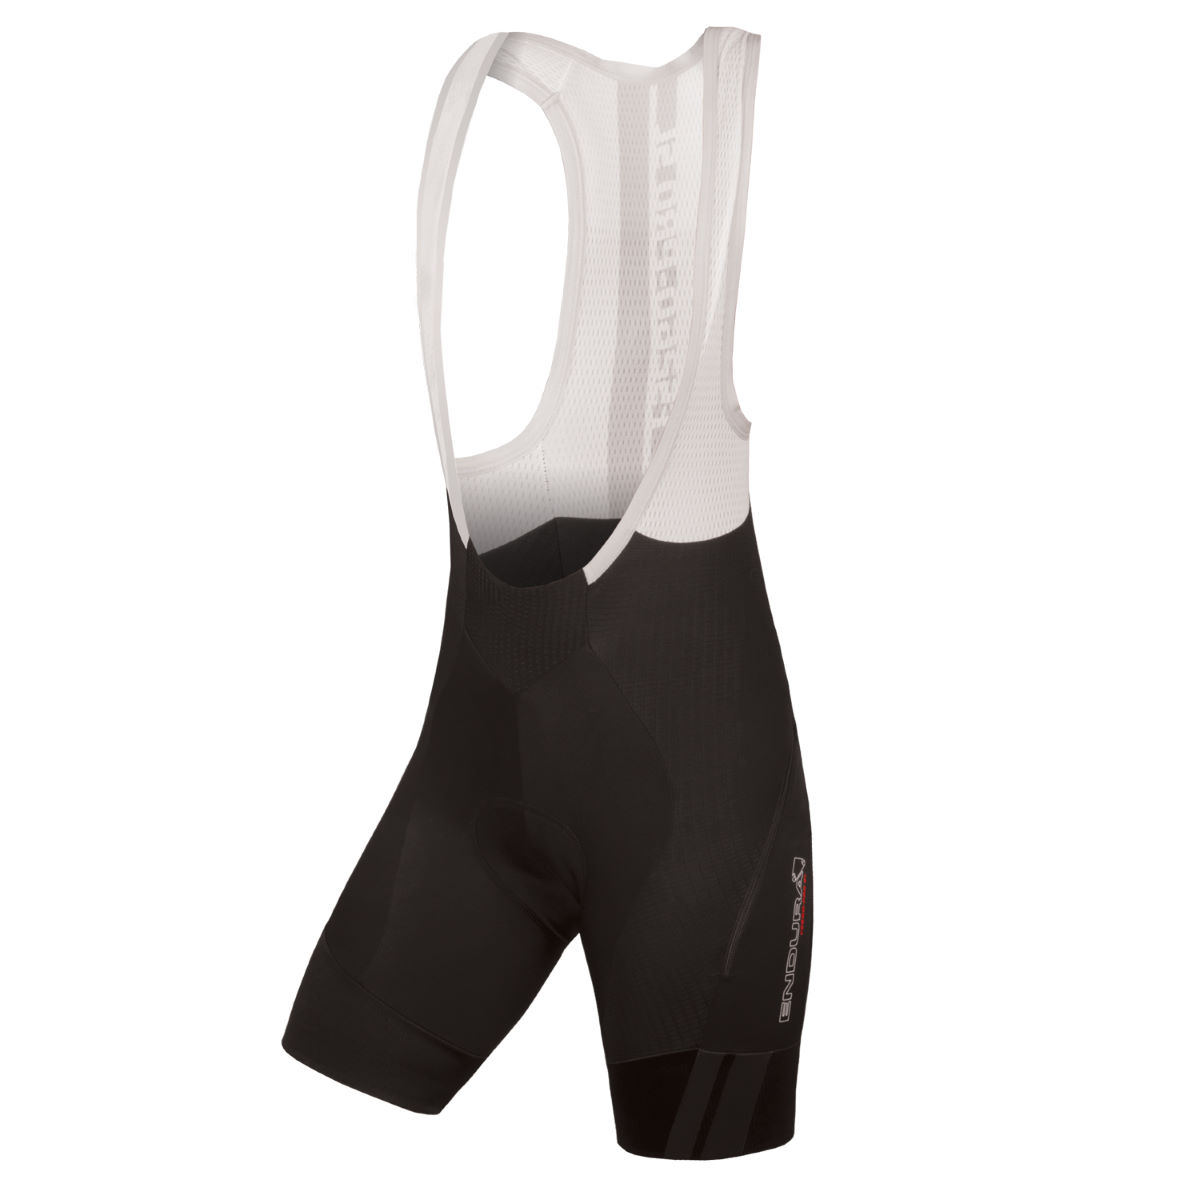 Endura Women's Pro SL DS Bib Shorts (Medium Pad) - X Small Black